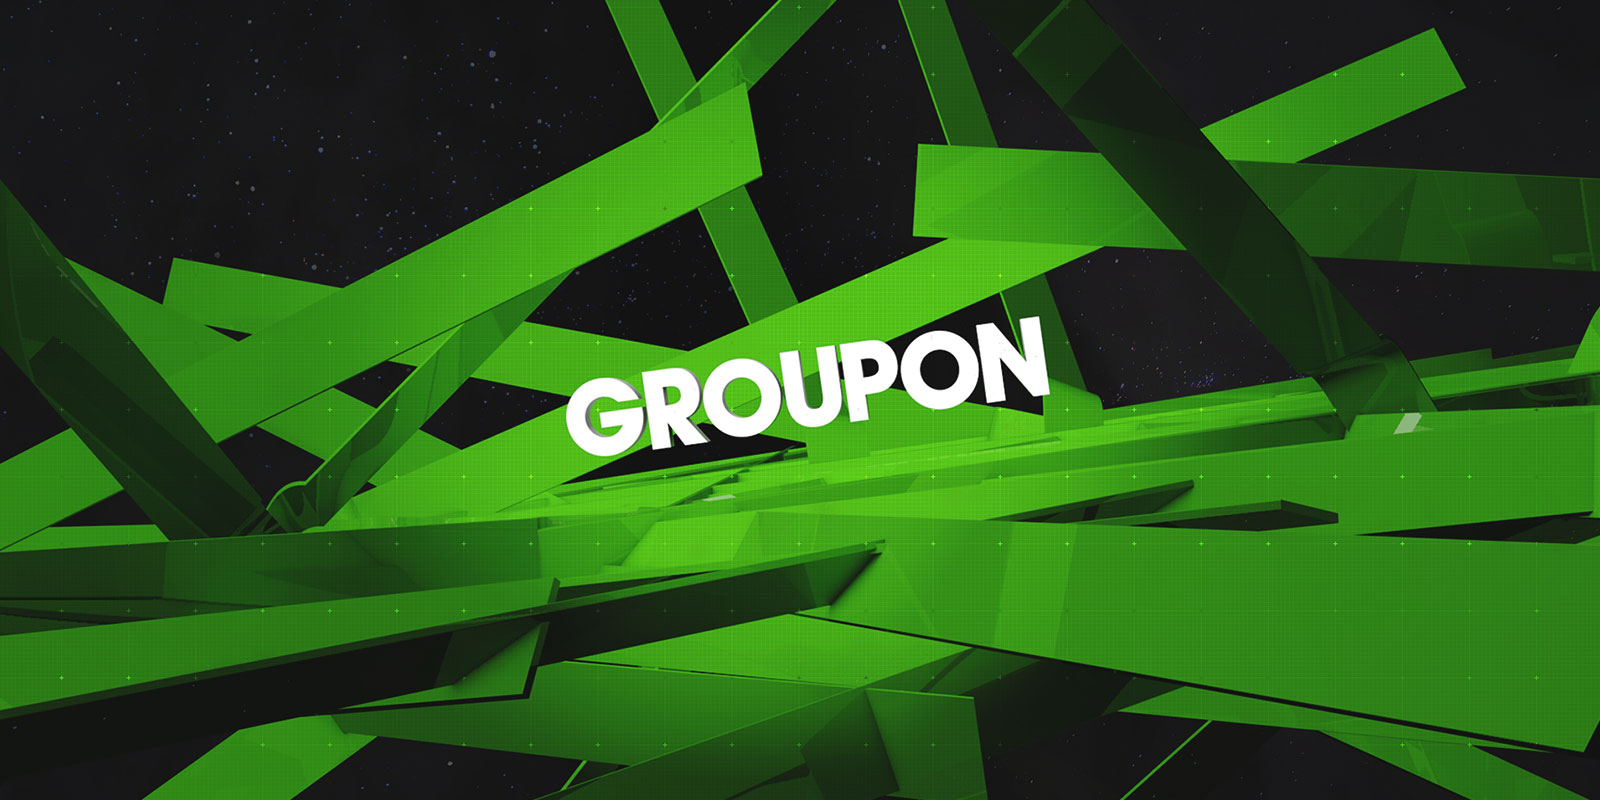 Groupon Zoom Splash Image